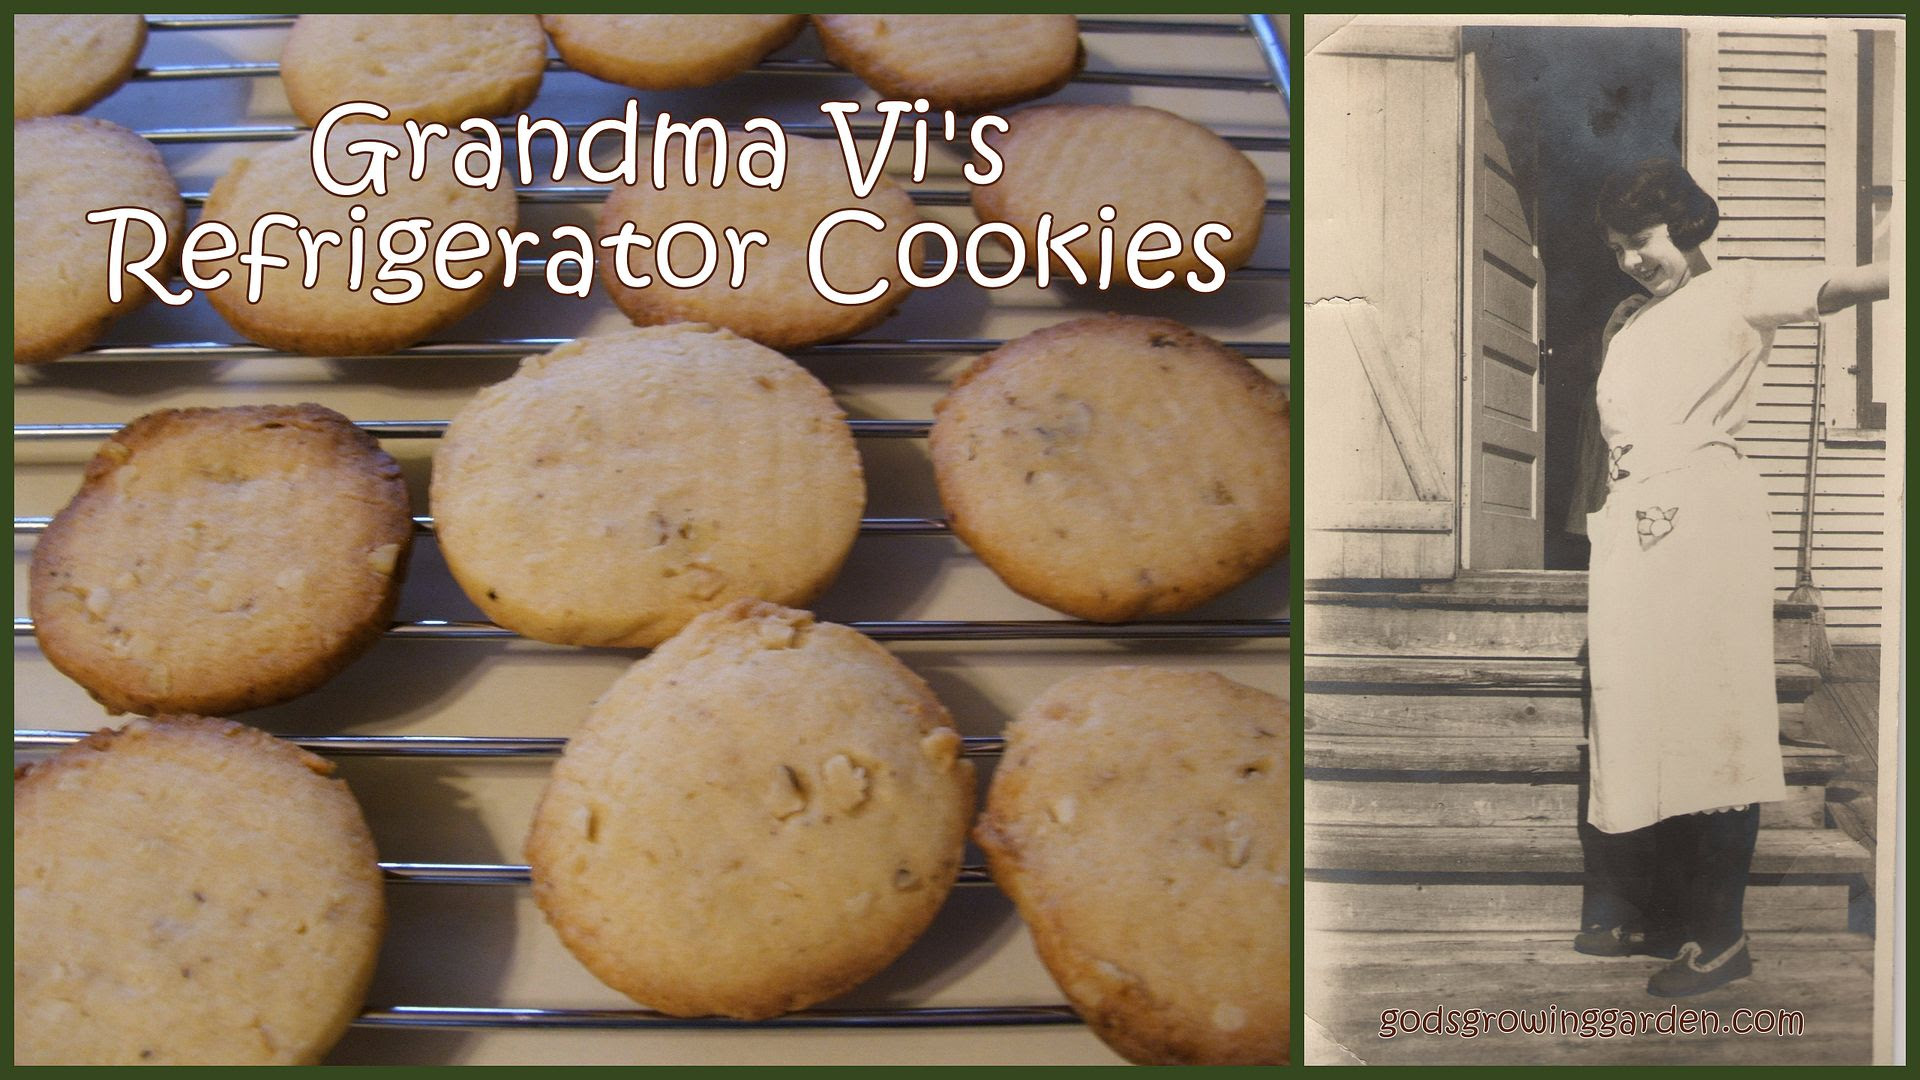 Grandma Vi's Fridge Cookies by Angie Ouellette-Tower for godsgrowinggarden.com photo OldPhotosTowerFam_zps549d9112.jpg